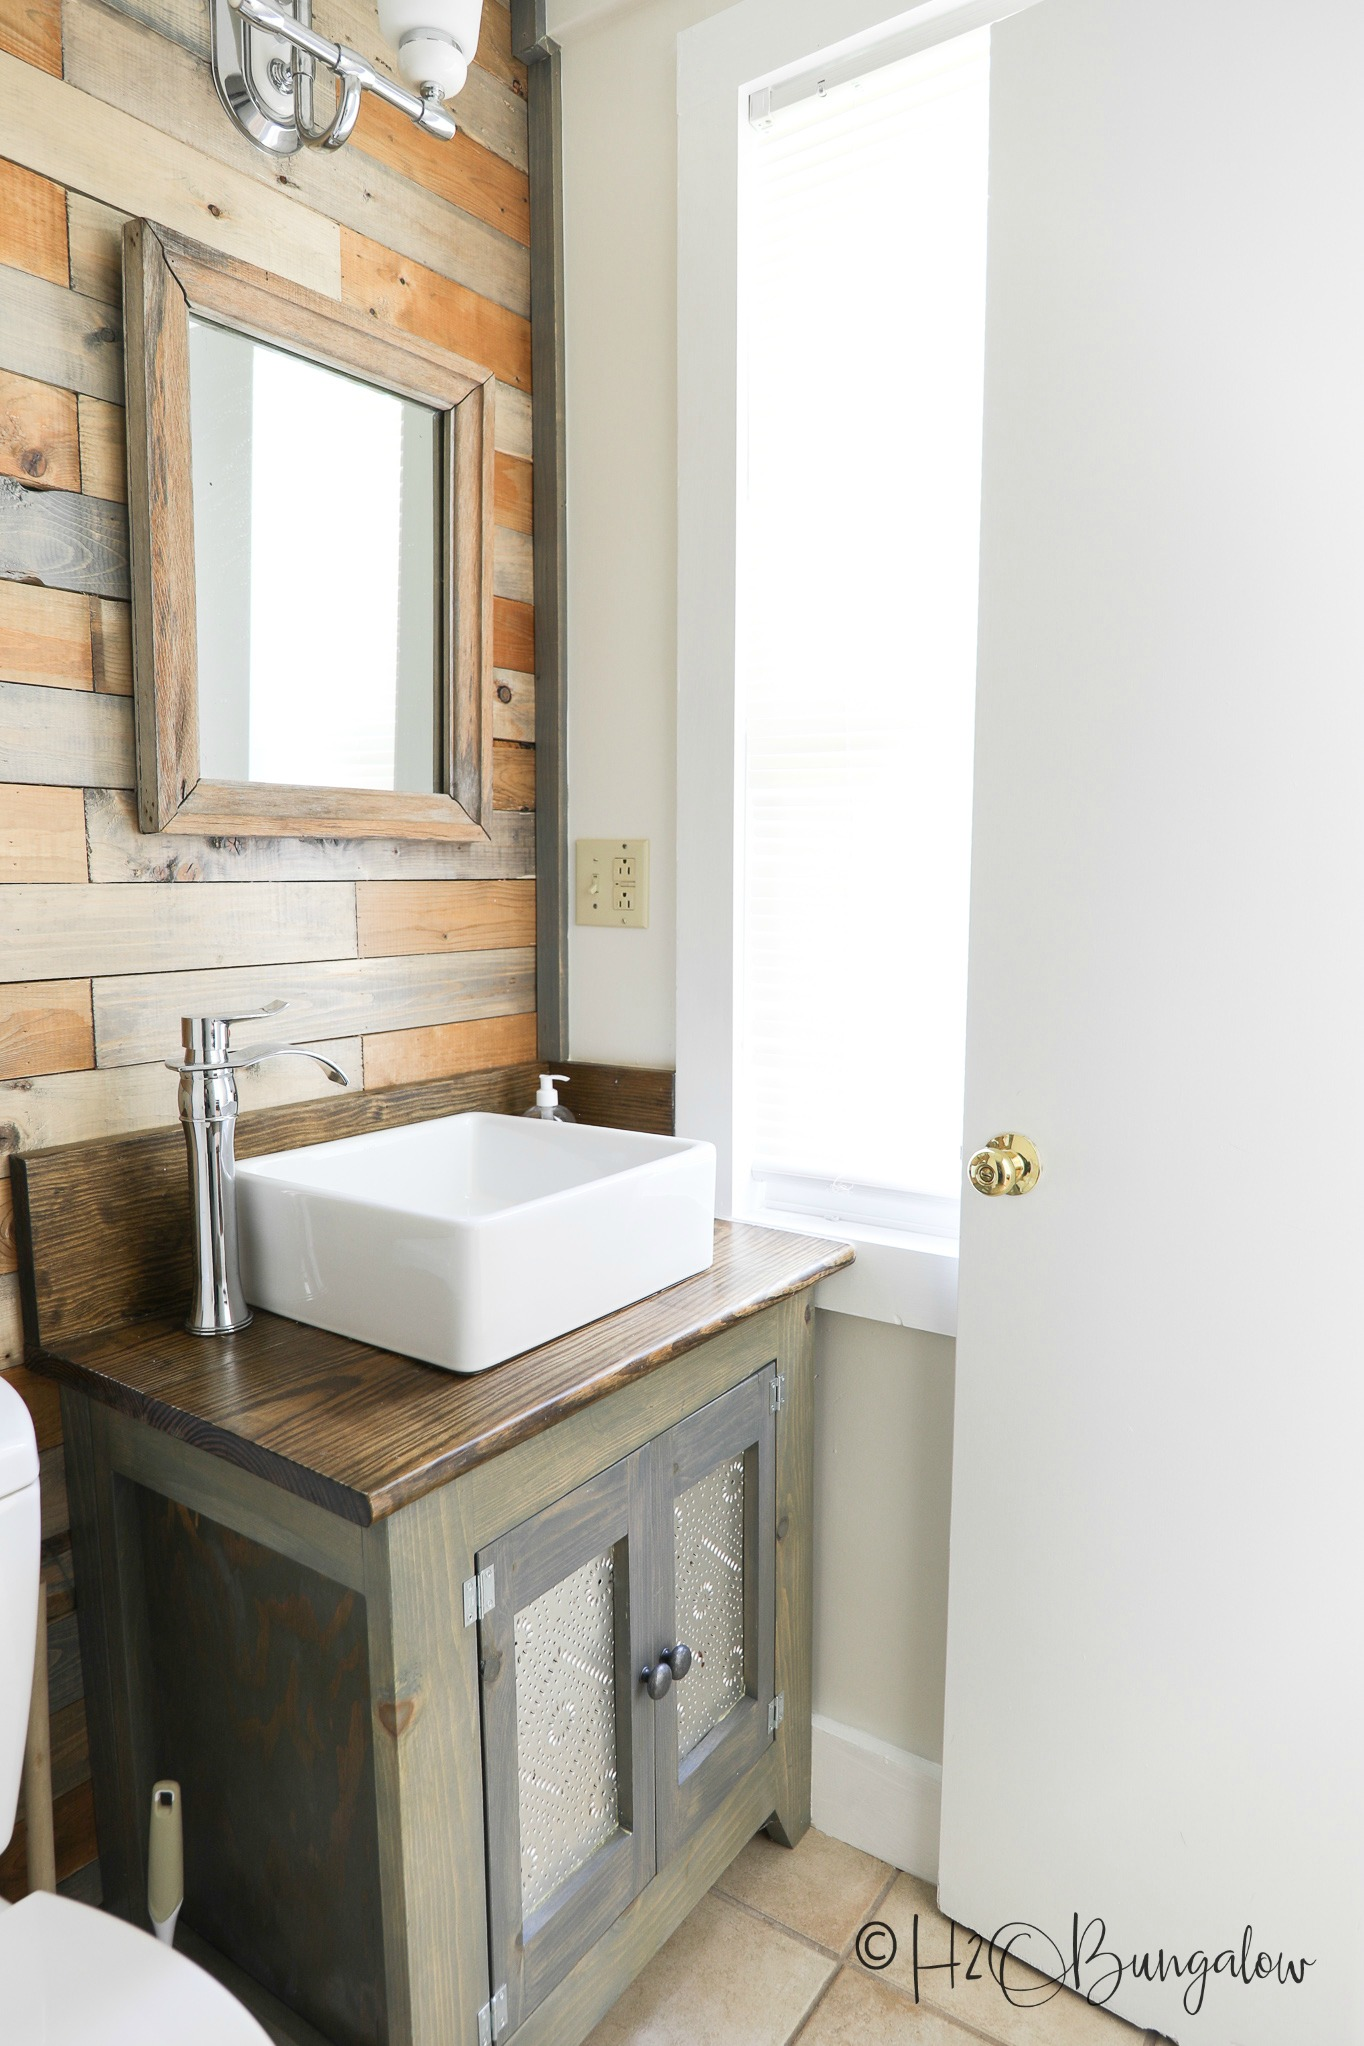 gorgeous renovated bath in Ludlow VT upscale vacation rental